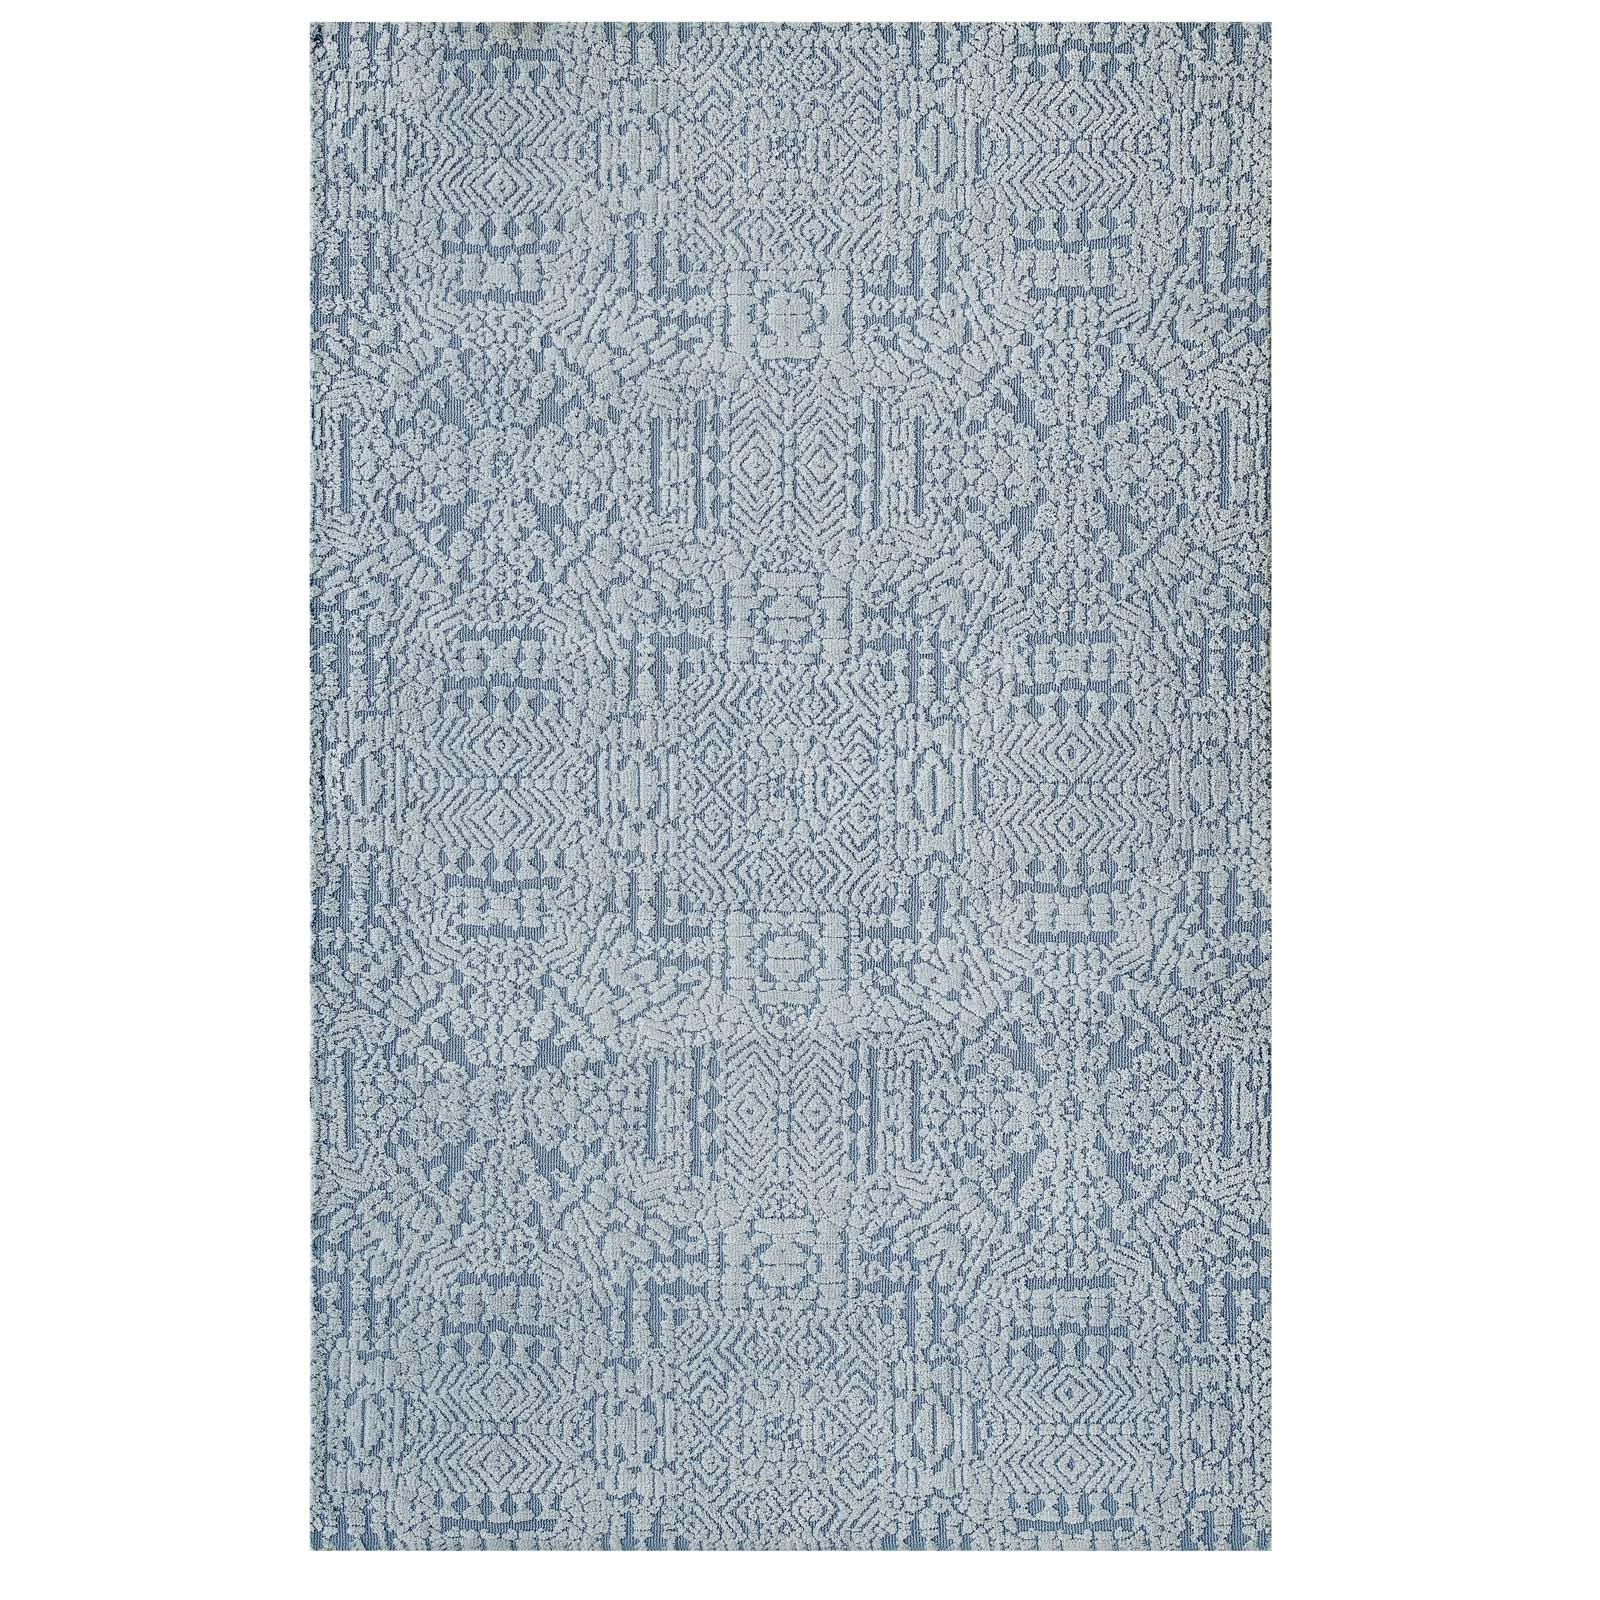 Javiera Contemporary Moroccan 8x10 Area Rug Ivory and Light Blue R-1018A-810